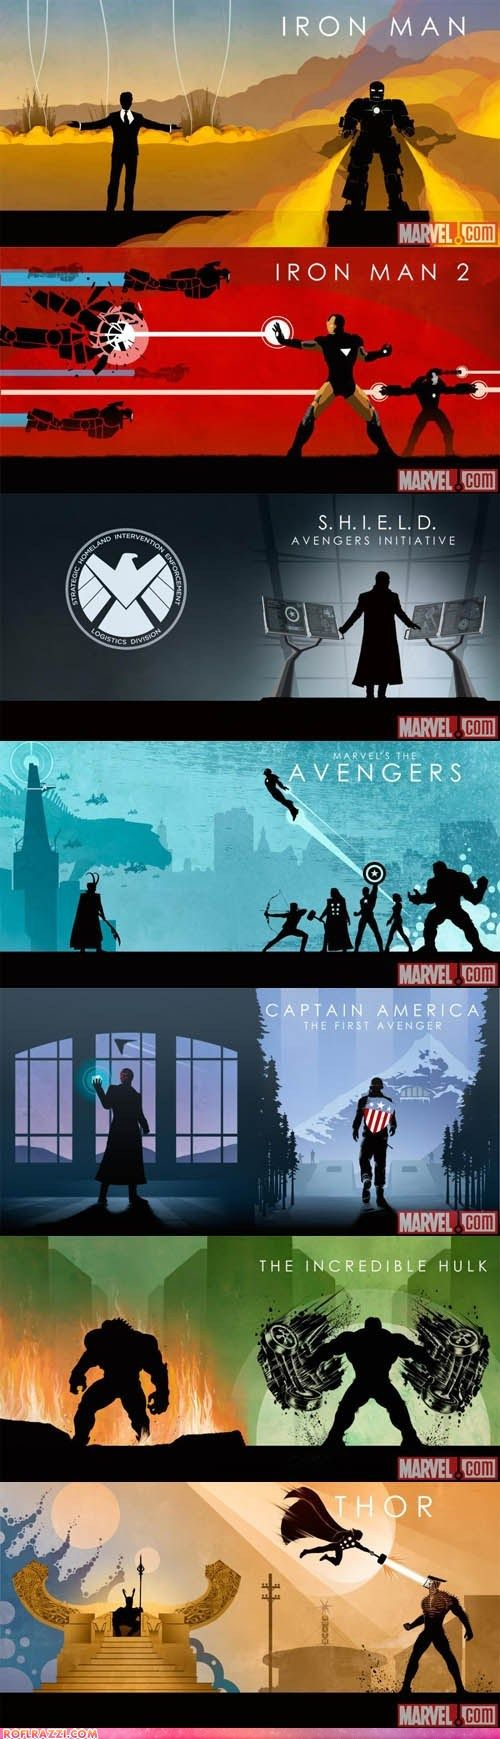 Matthew Ferguson designed these awesome Avengers themed disc sleeves. Now all he needs is Black Widow and Hawkeye...